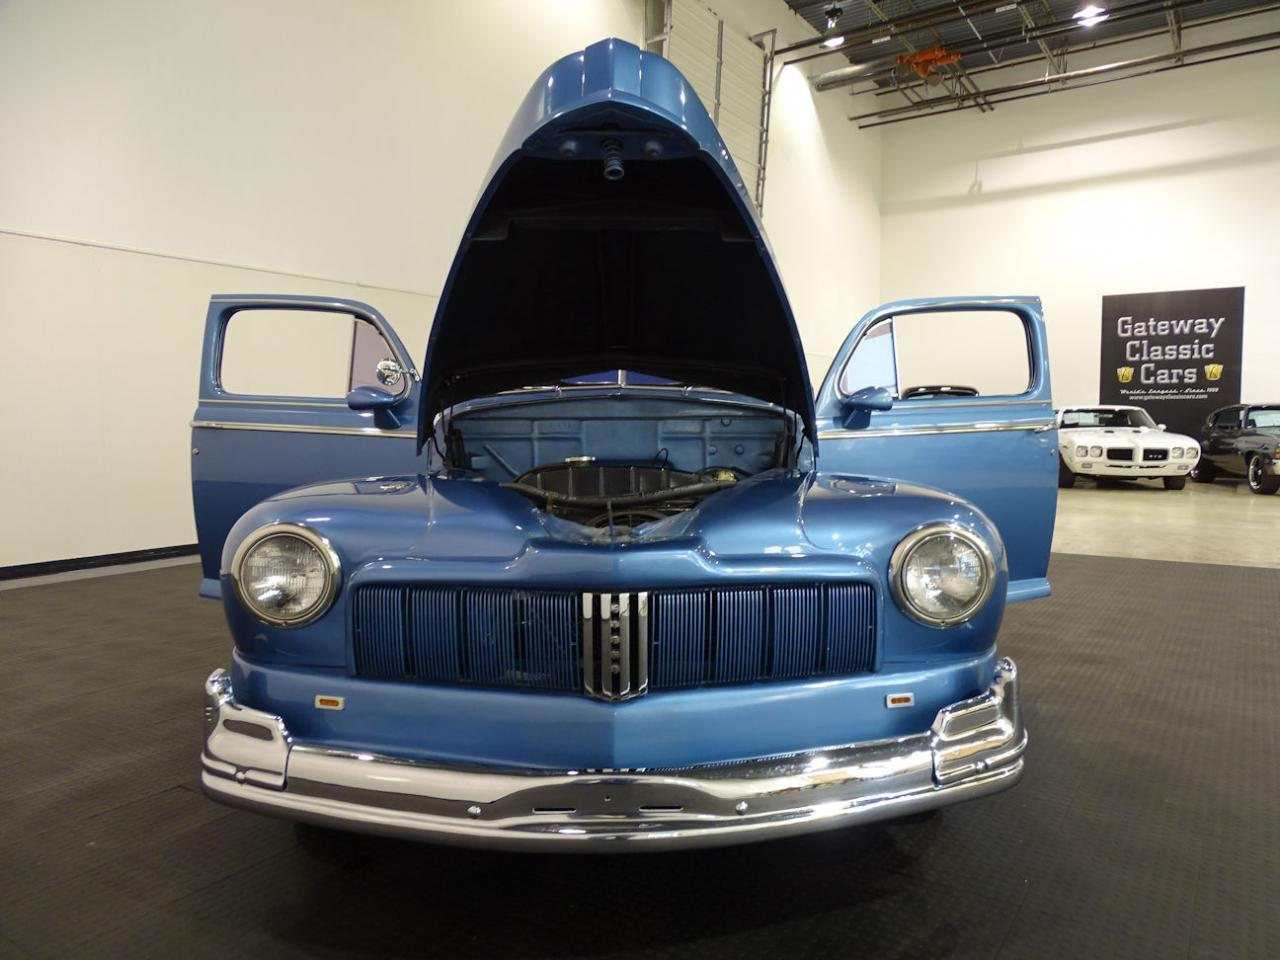 Large Picture of Classic 1947 Mercury Coupe located in Indianapolis Indiana - $19,995.00 Offered by Gateway Classic Cars - Indianapolis - MFNJ